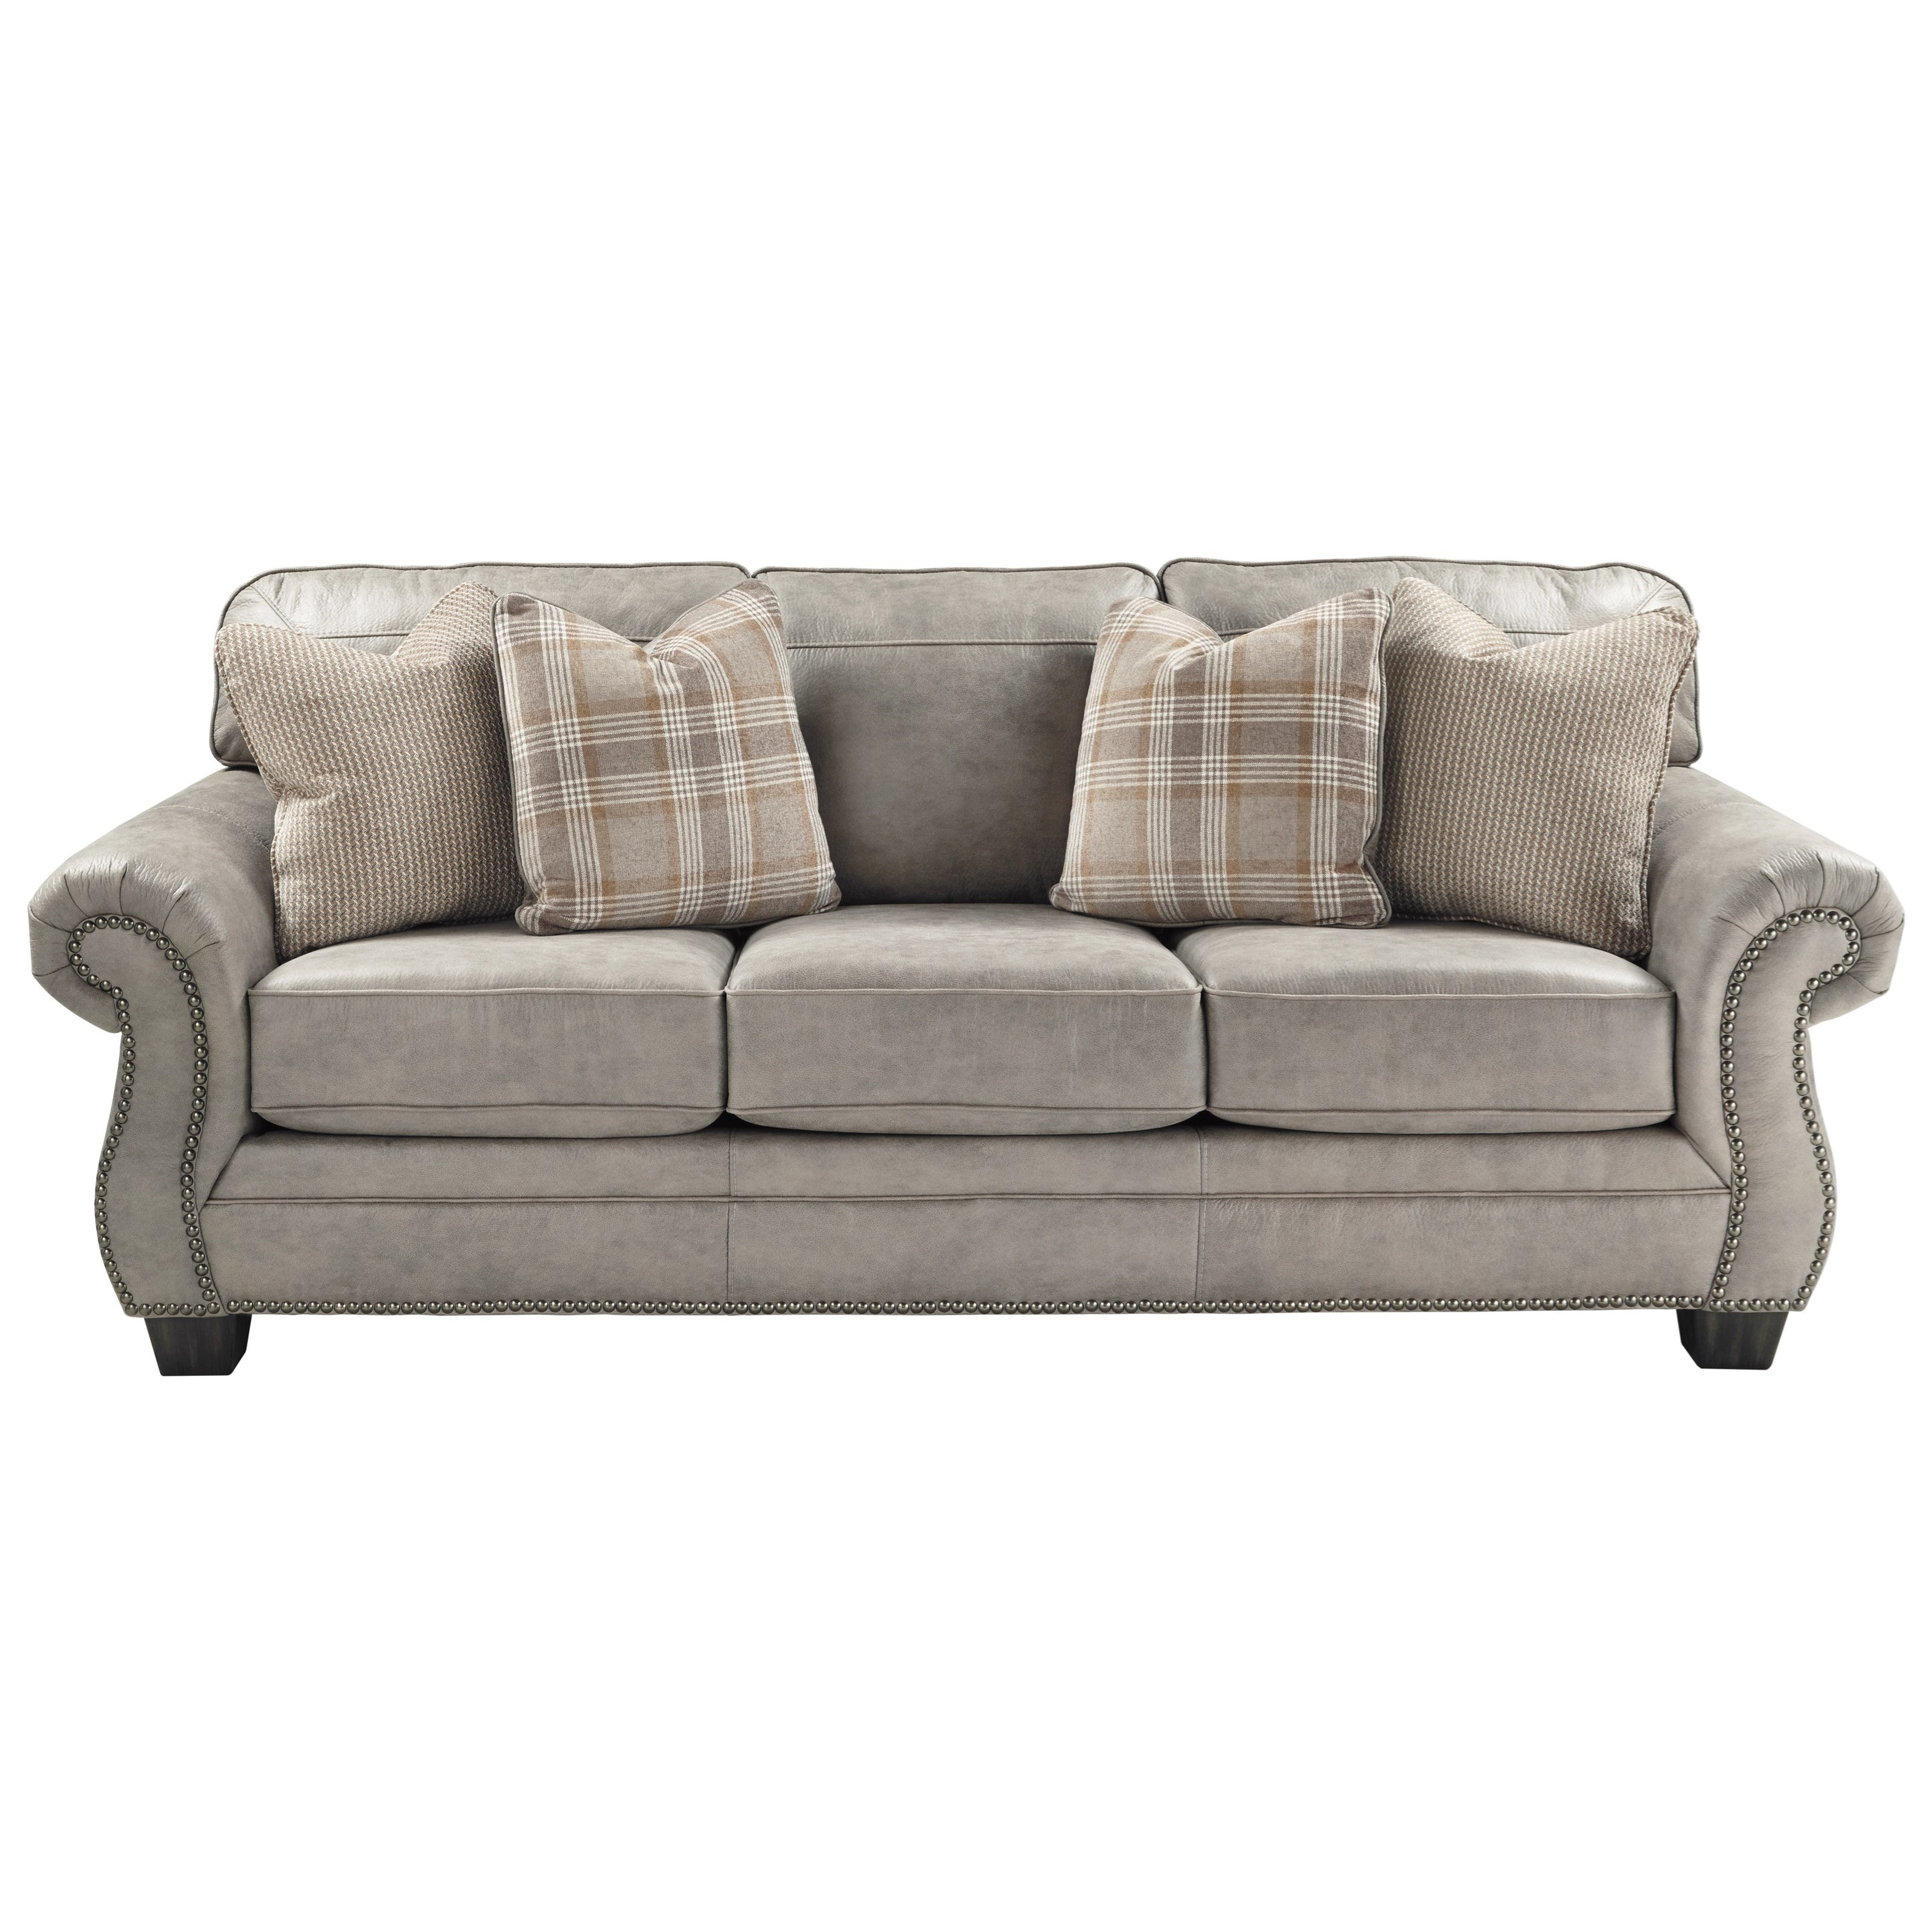 Ashley Furniture Sofas: Signature Design By Ashley Olsberg Transitional Queen Sofa